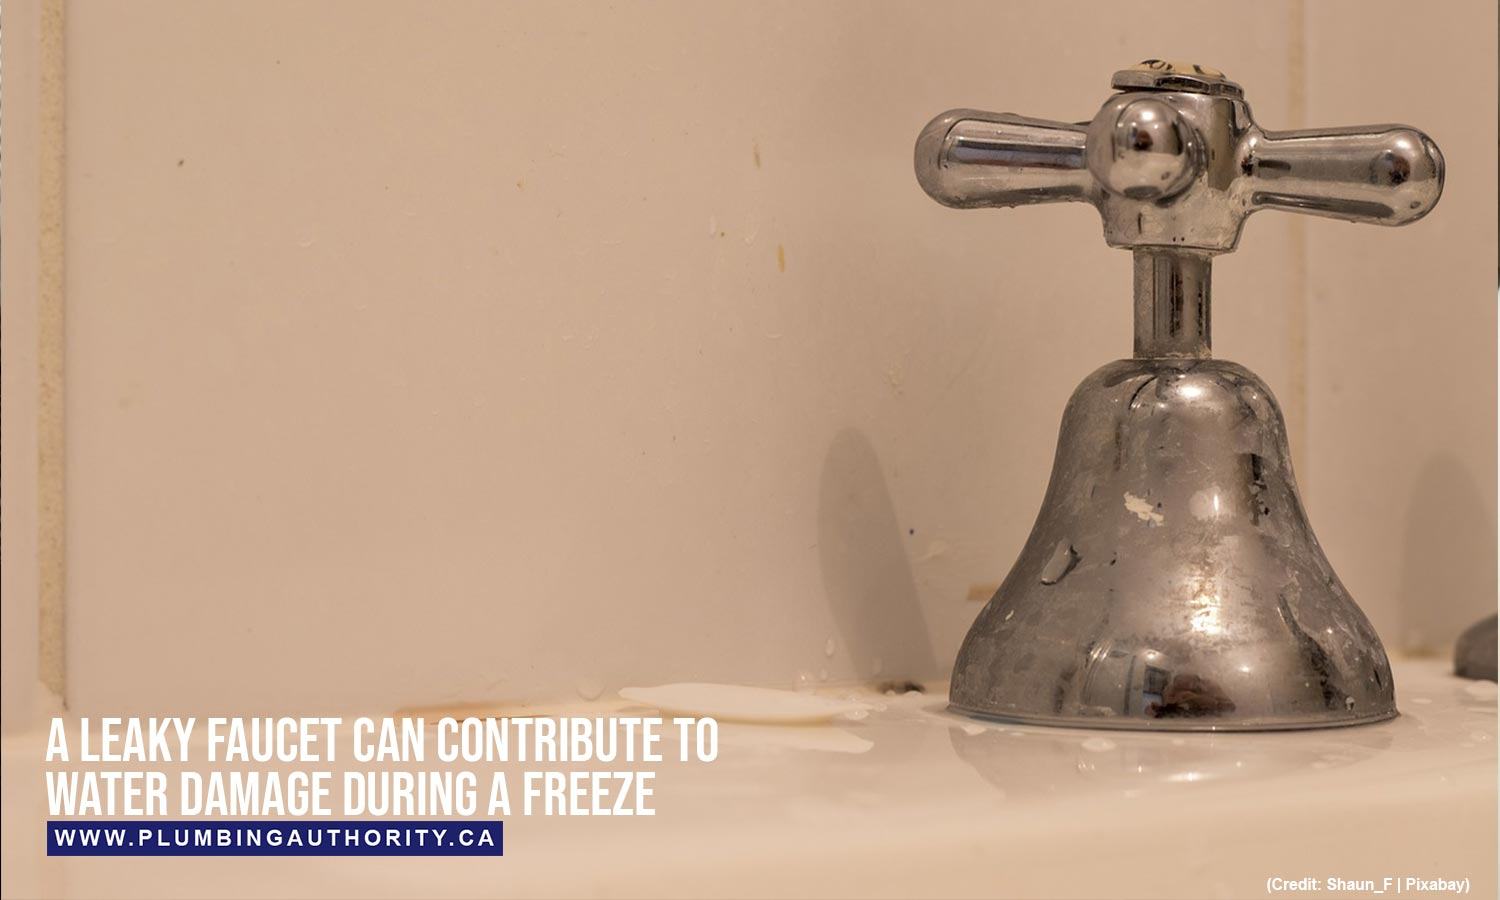 A leaky faucet can contribute to water damage